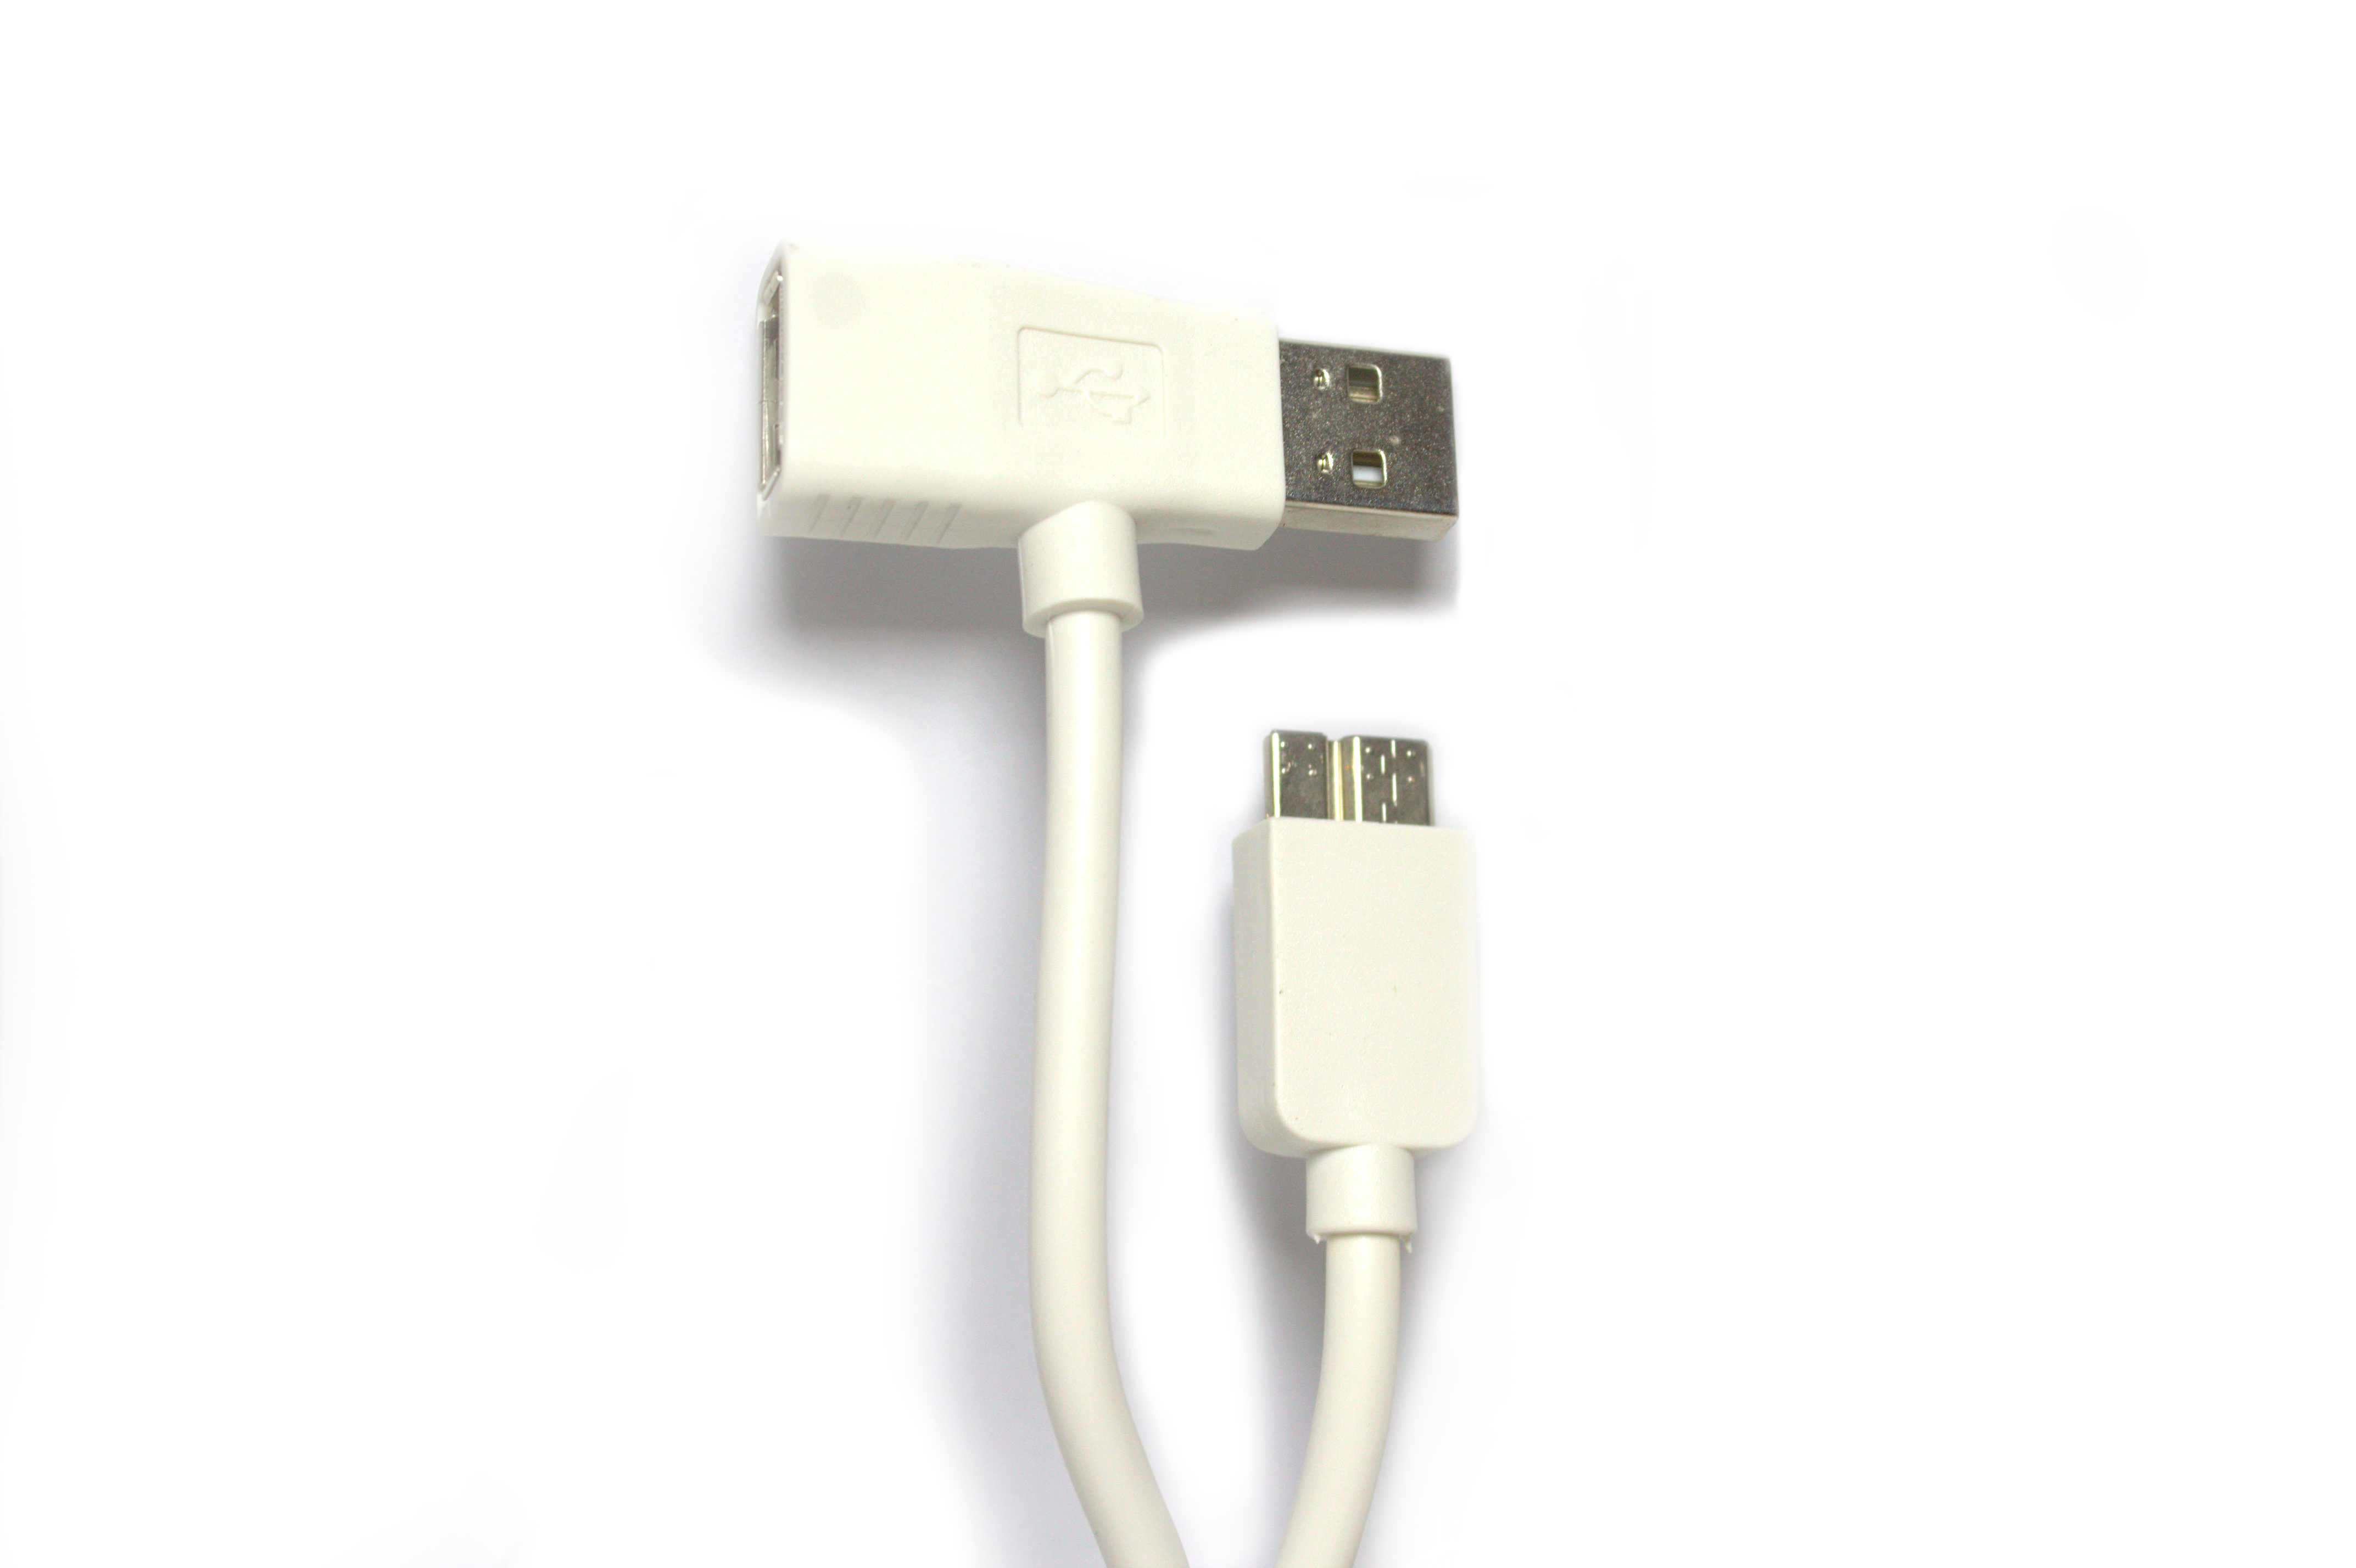 Кабел за данни No brand micro USB 3.0 - USB /USB F, SAMSUNG S5 / Note 3, Бял, 1m - 14231